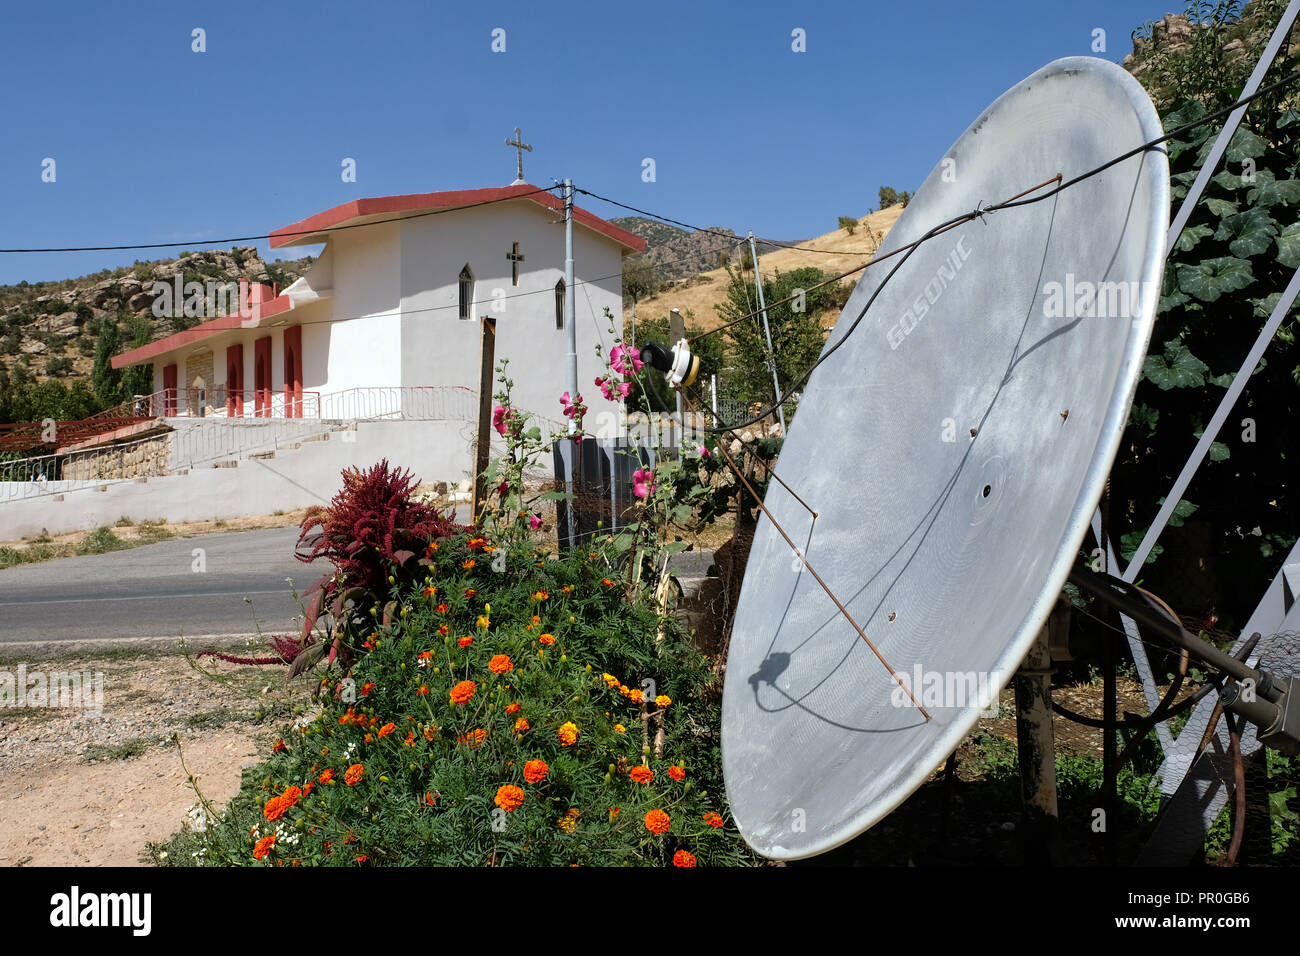 Christian church in northern Iraq, Kurdistan --- Christliche Kirche im Nord-Irak, Kurdistan - Stock Image